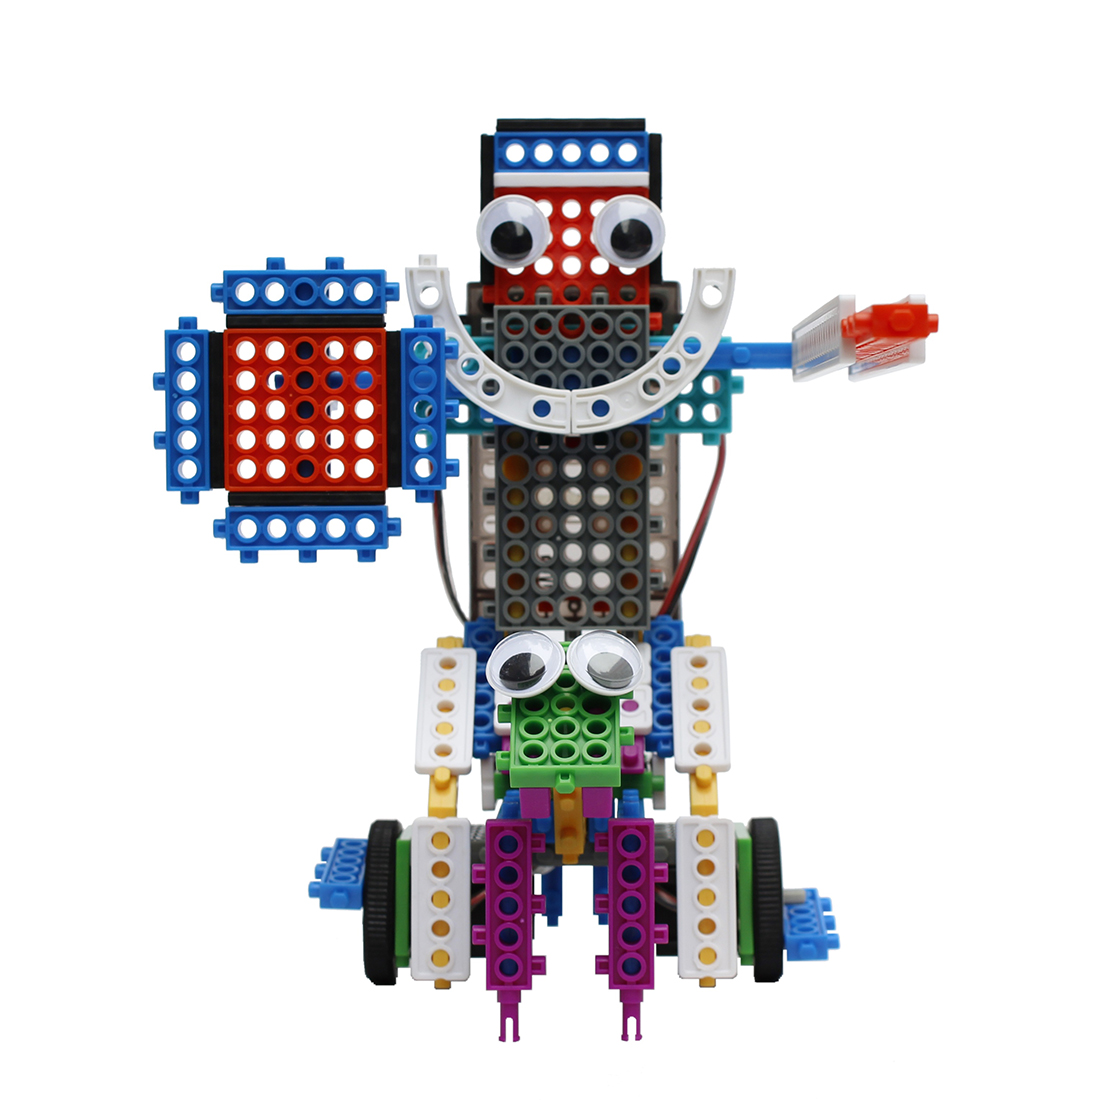 Creative 4 In 1 My DIY Robot Creative Toy Land Series Robot Building Block Kit Assembly Educational Robot Toy - 3-Exciting